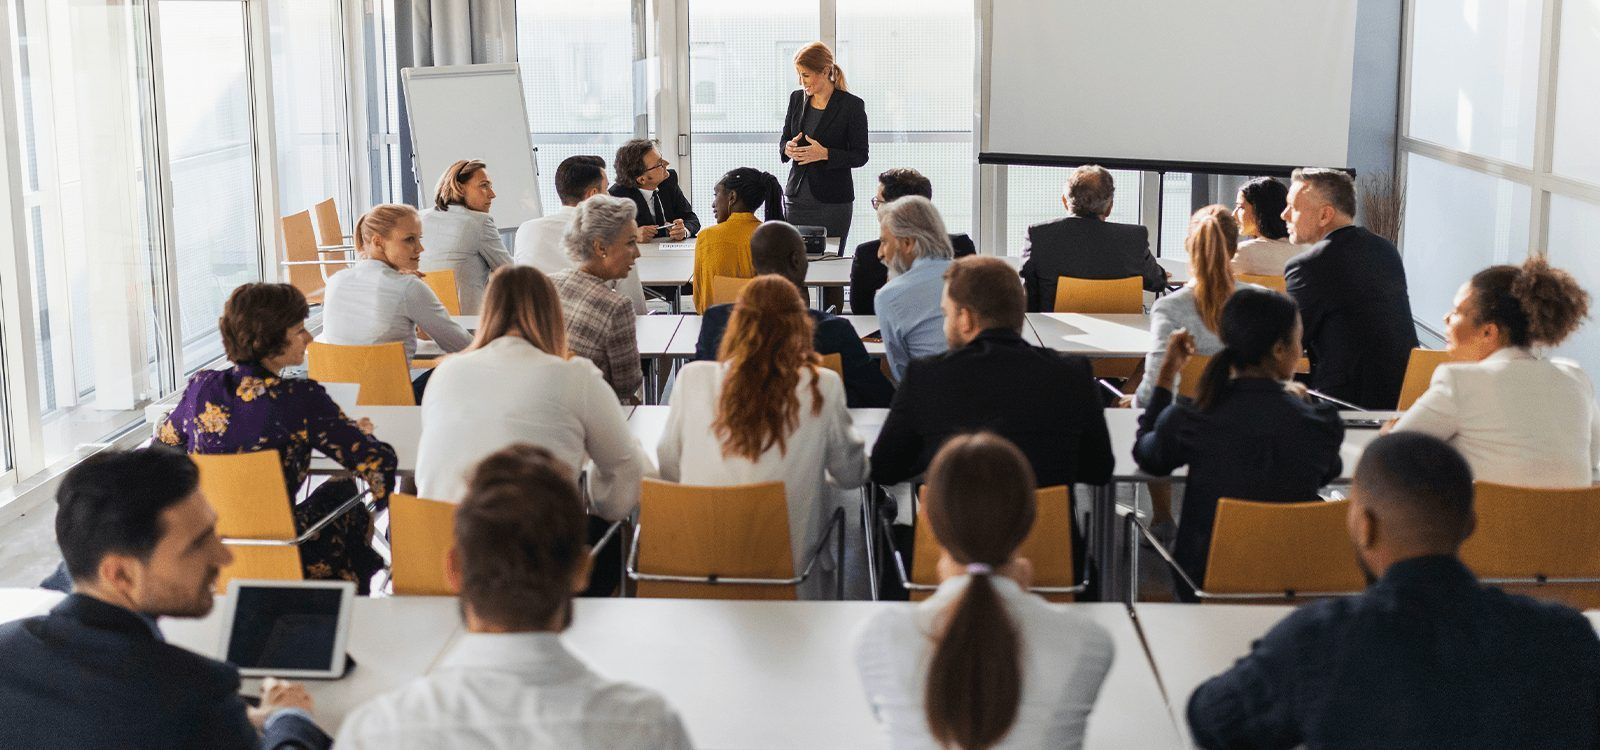 Becoming your own expert of presenting